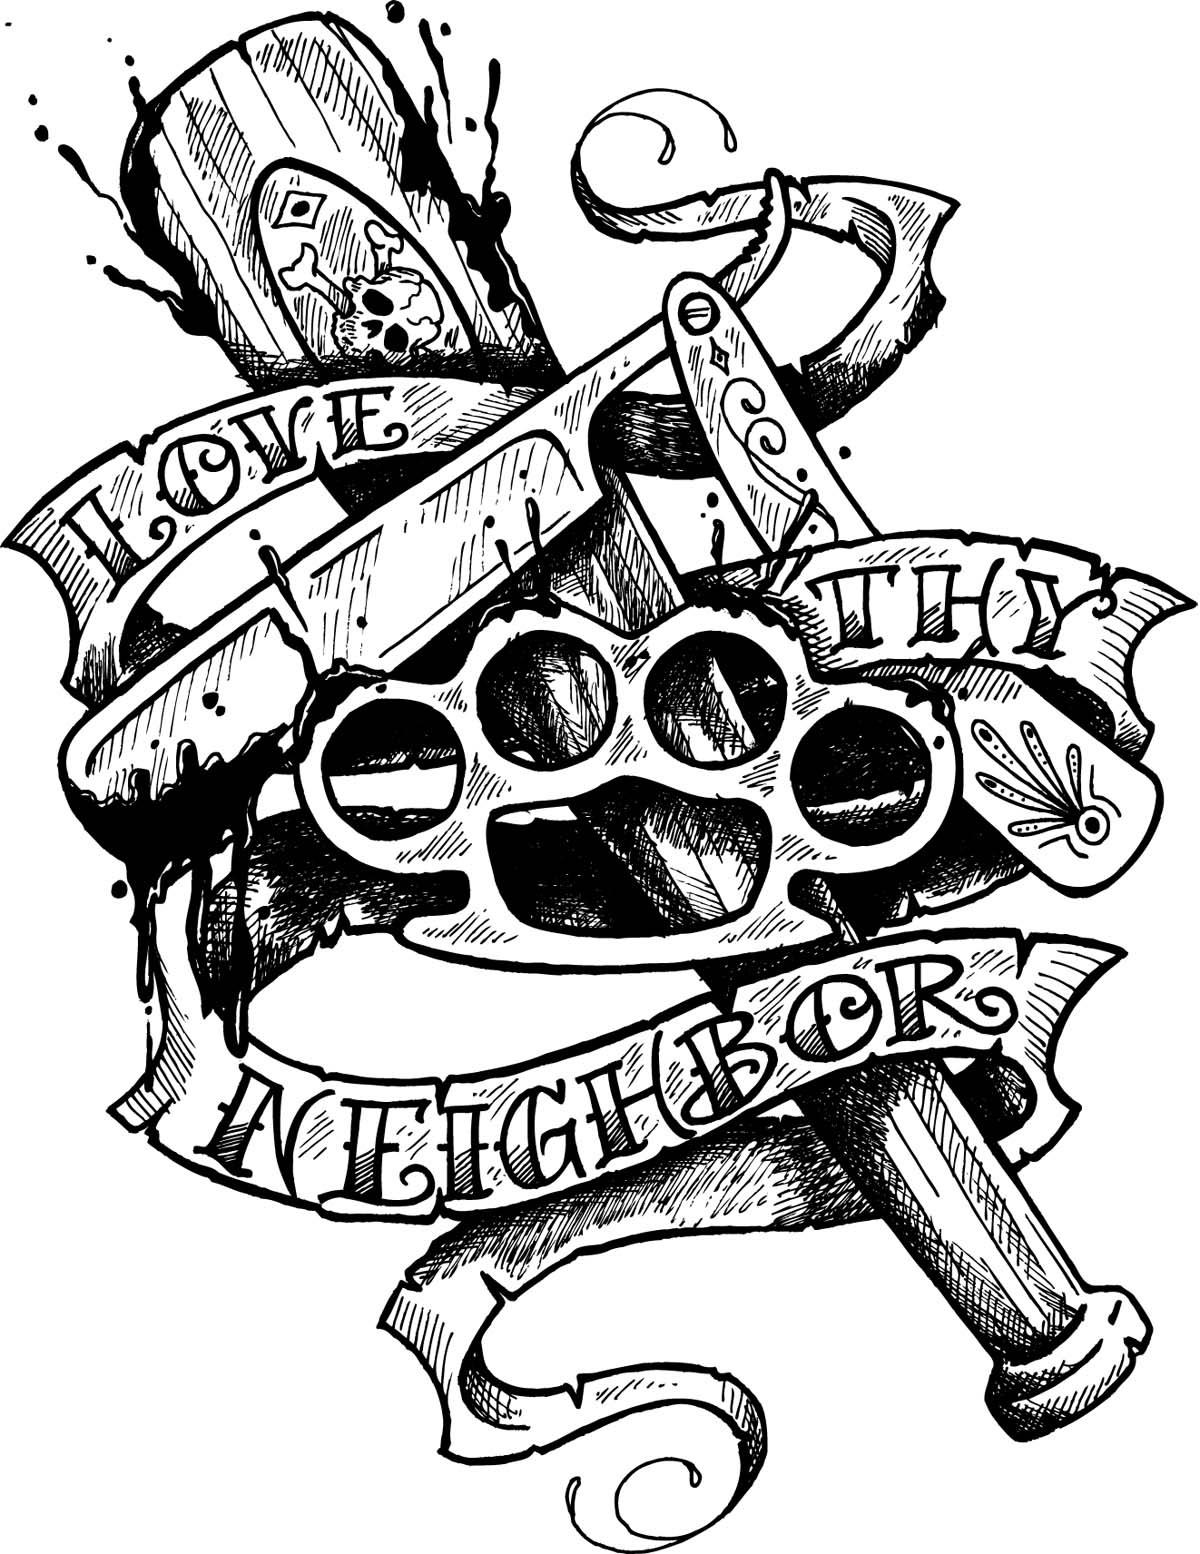 love-thy-neighbor-tattoo-flash-by-sd-designs-1872512913